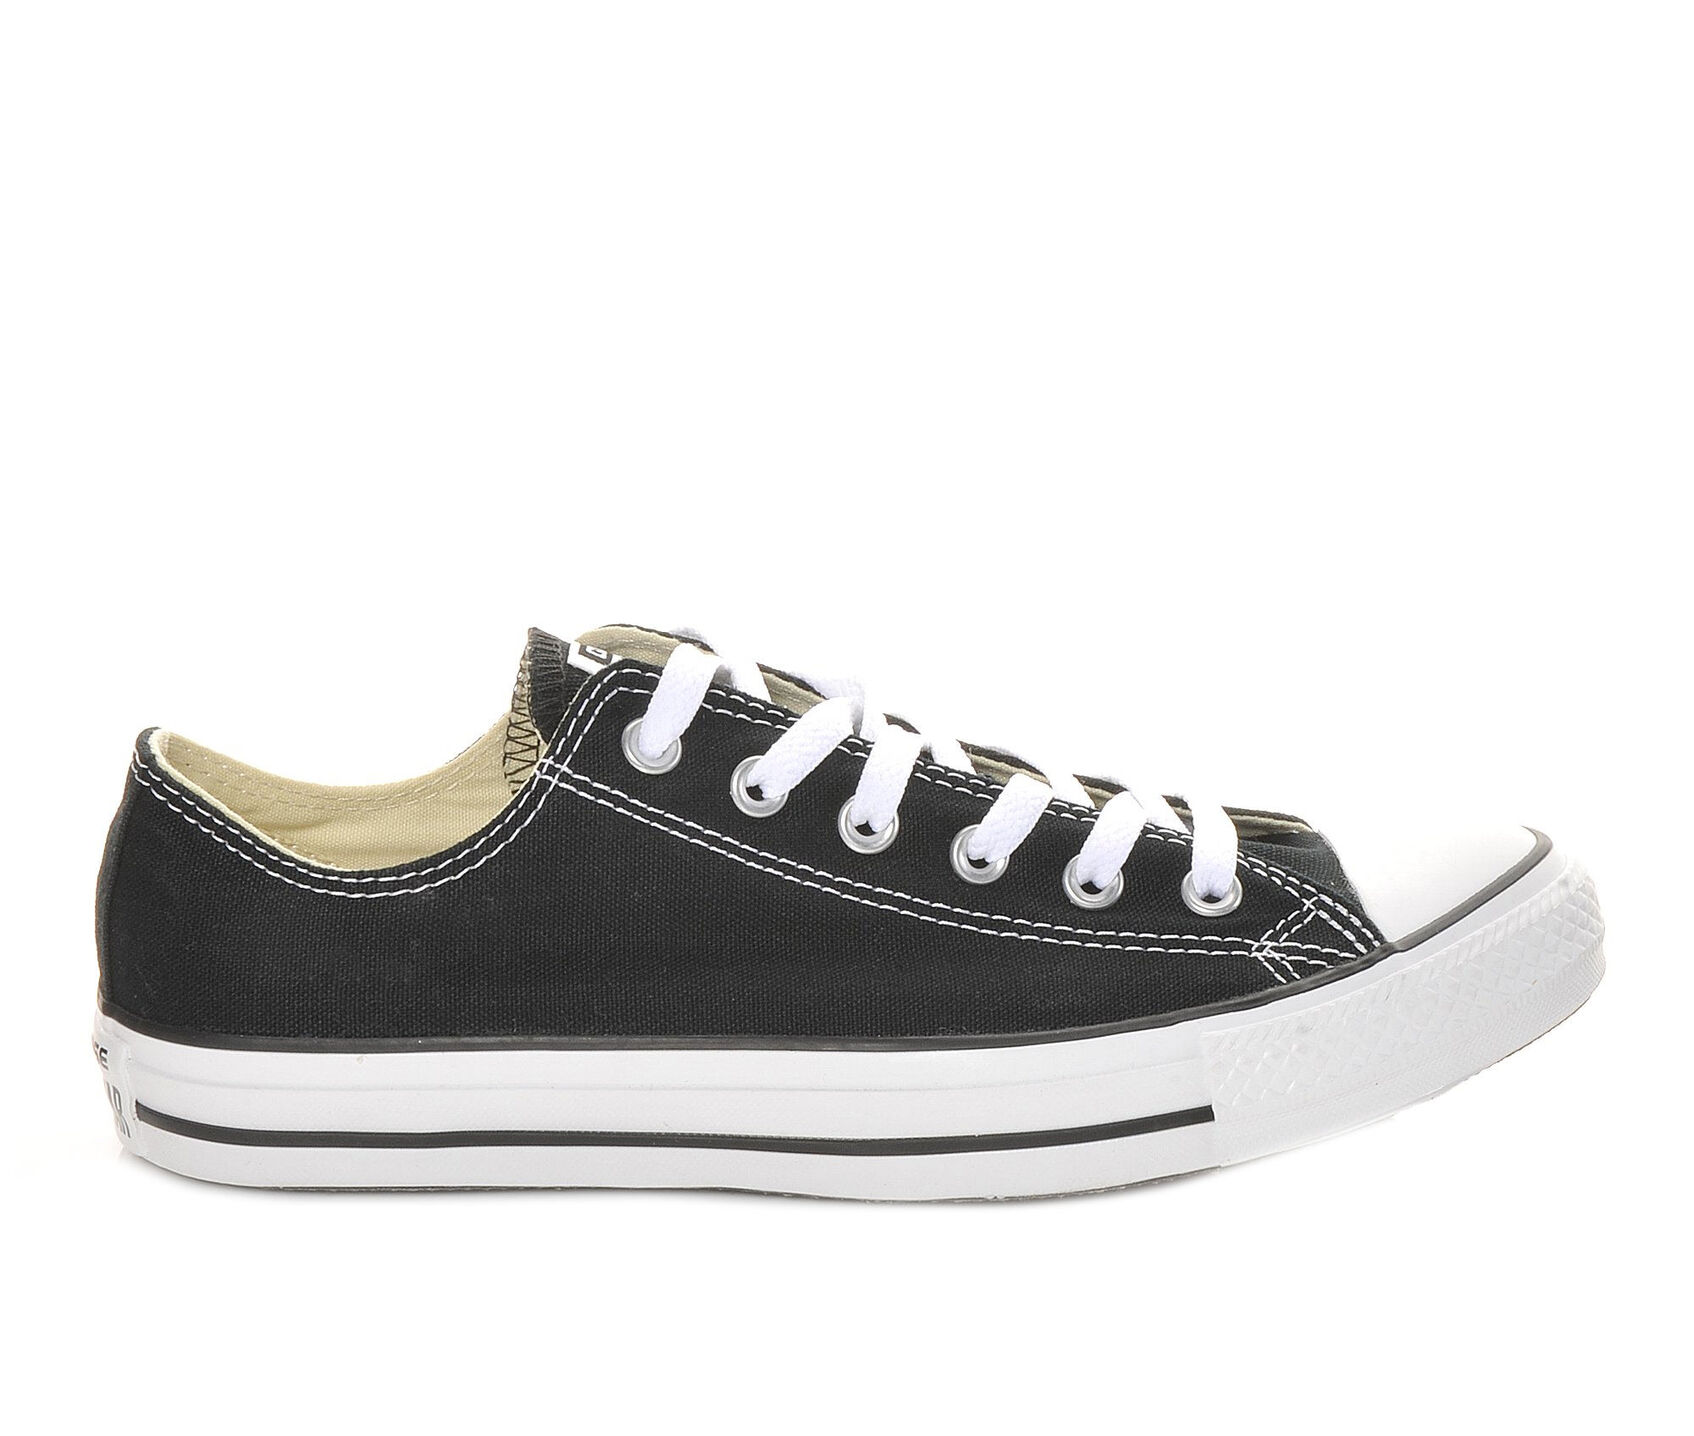 8973558cc08437 Adults  Converse Chuck Taylor All Star Canvas Ox Core Sneakers ...